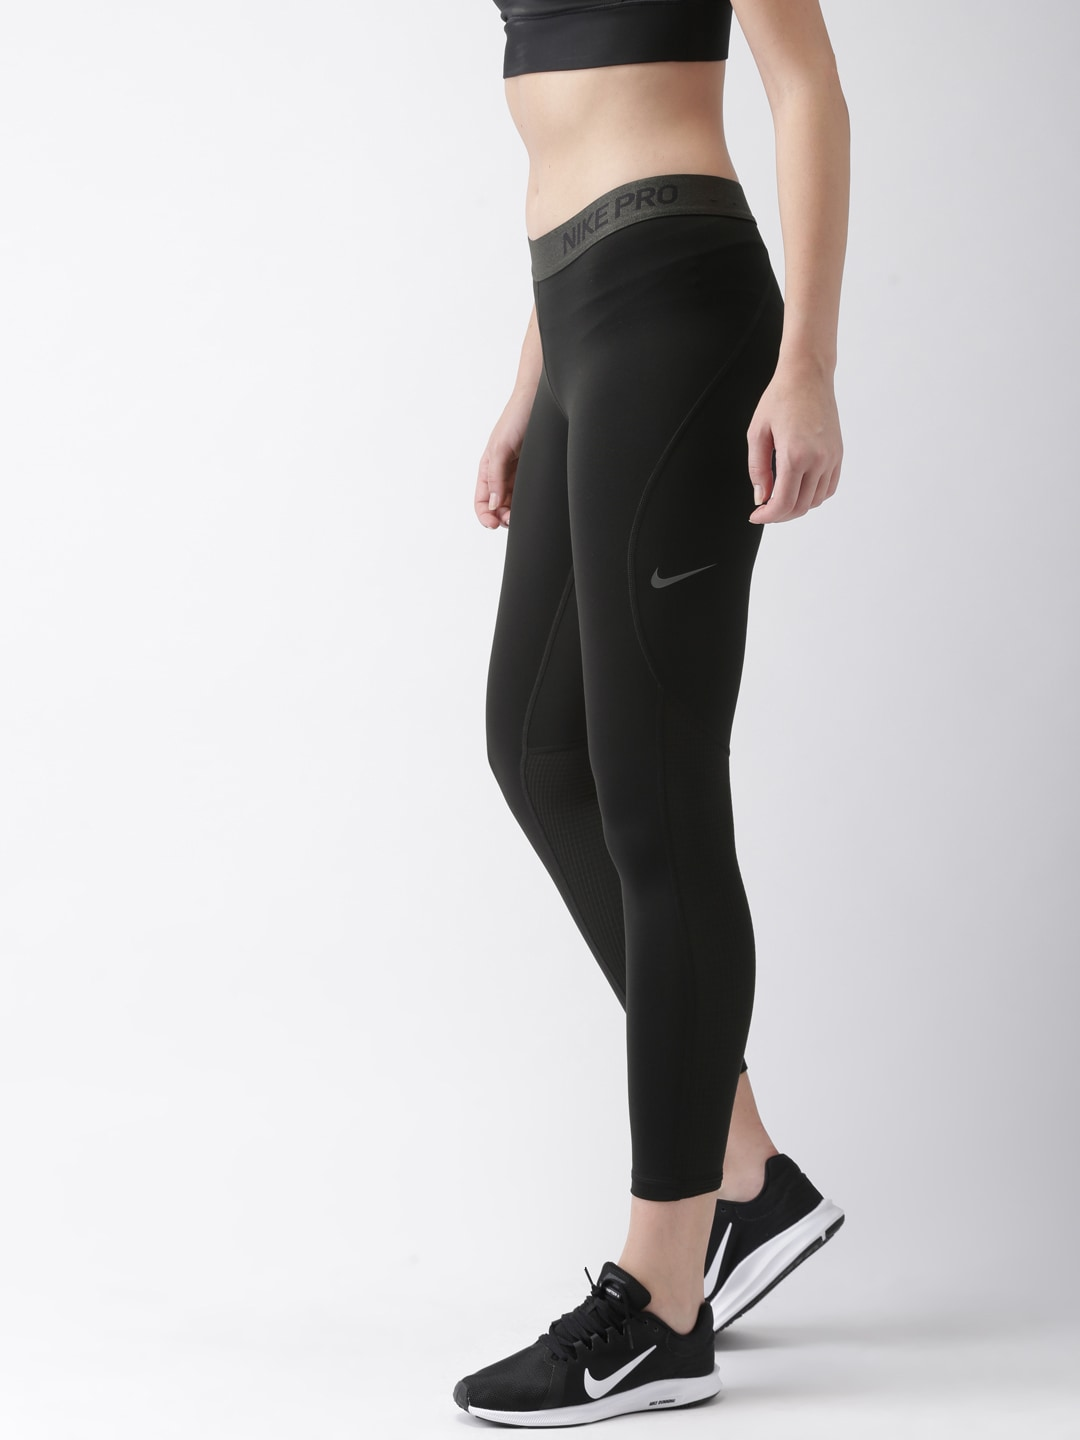 53476a78 Nike Vases Tights Jackets - Buy Nike Vases Tights Jackets online in India